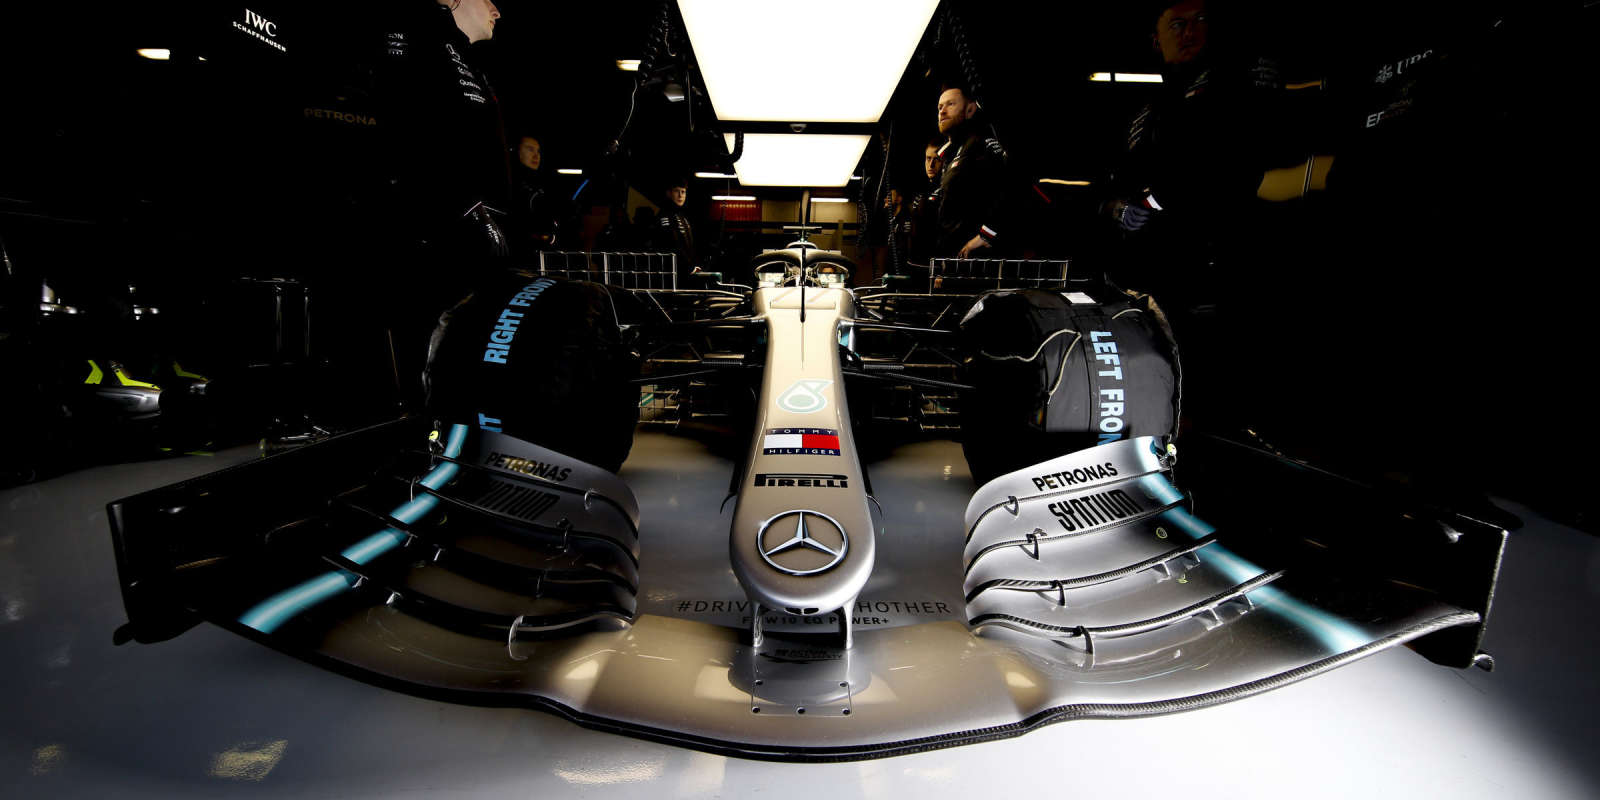 Images from the first official pre-season test of the 2019 F1 season